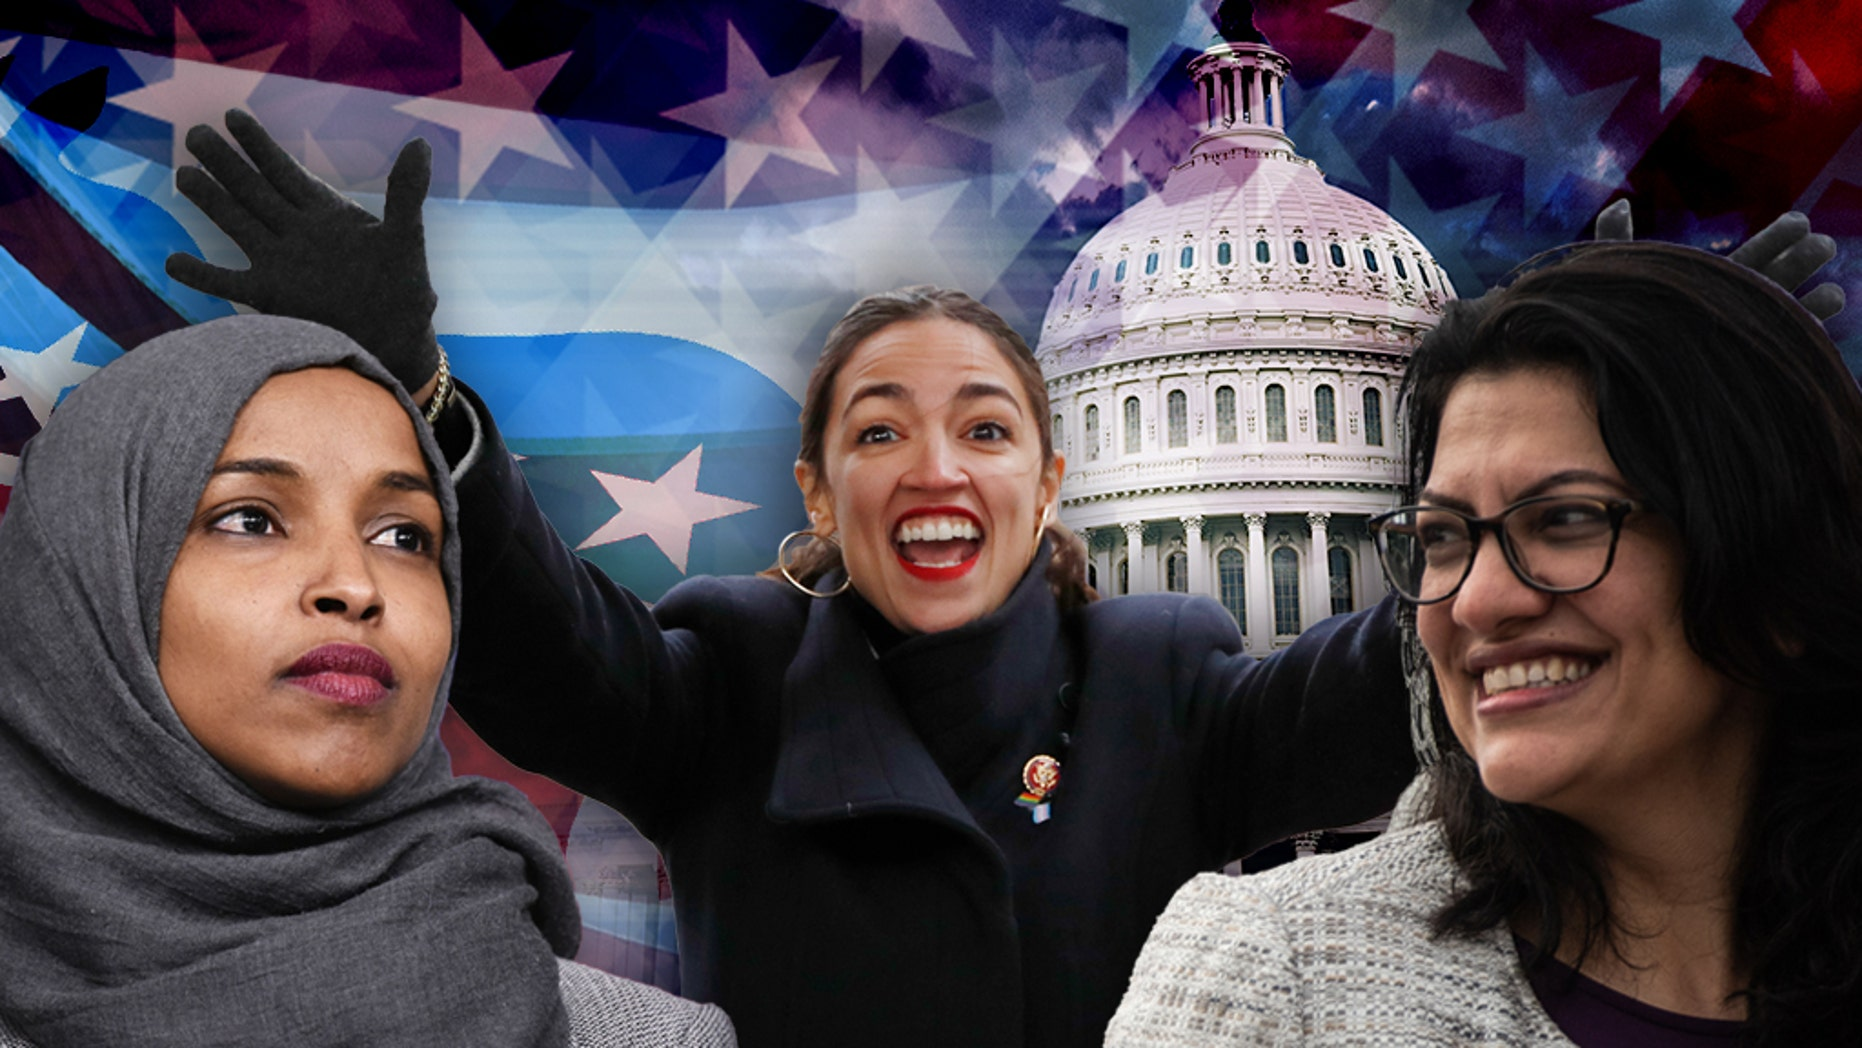 Three freshman lawmakers causing a stir on Capitol Hill: From left are U.S. Reps. Ilhan Omar, Alexandria Ocasio-Cortez and Rashida Tlaib.